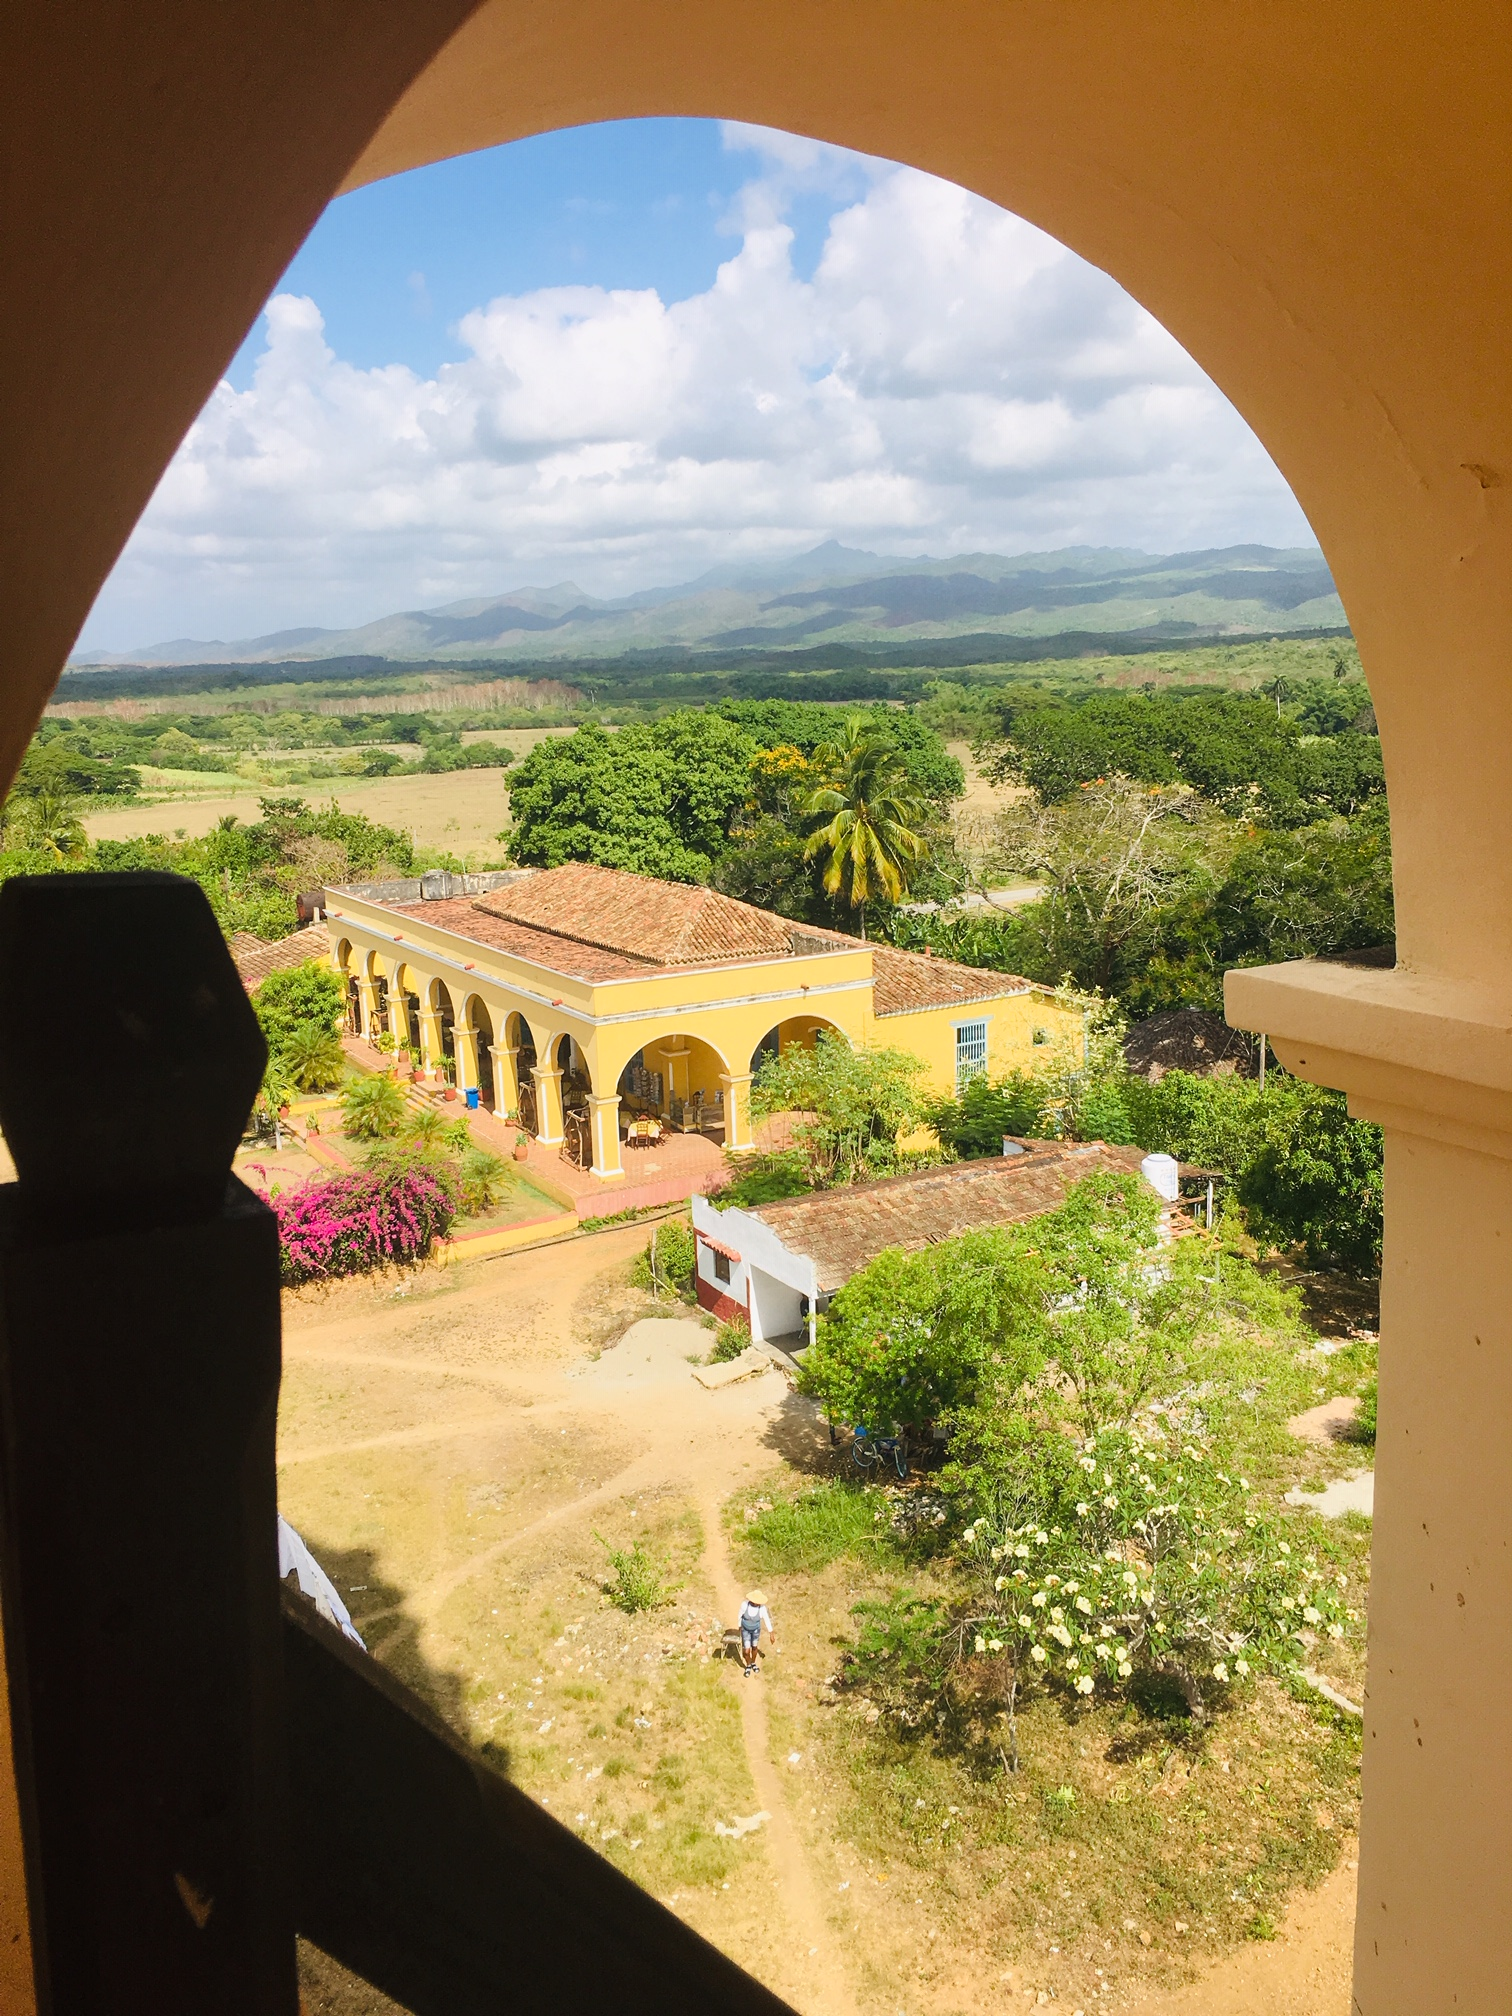 This is a view of the plantation owners house from a top of the lookout tower at Manaca Iznaga.